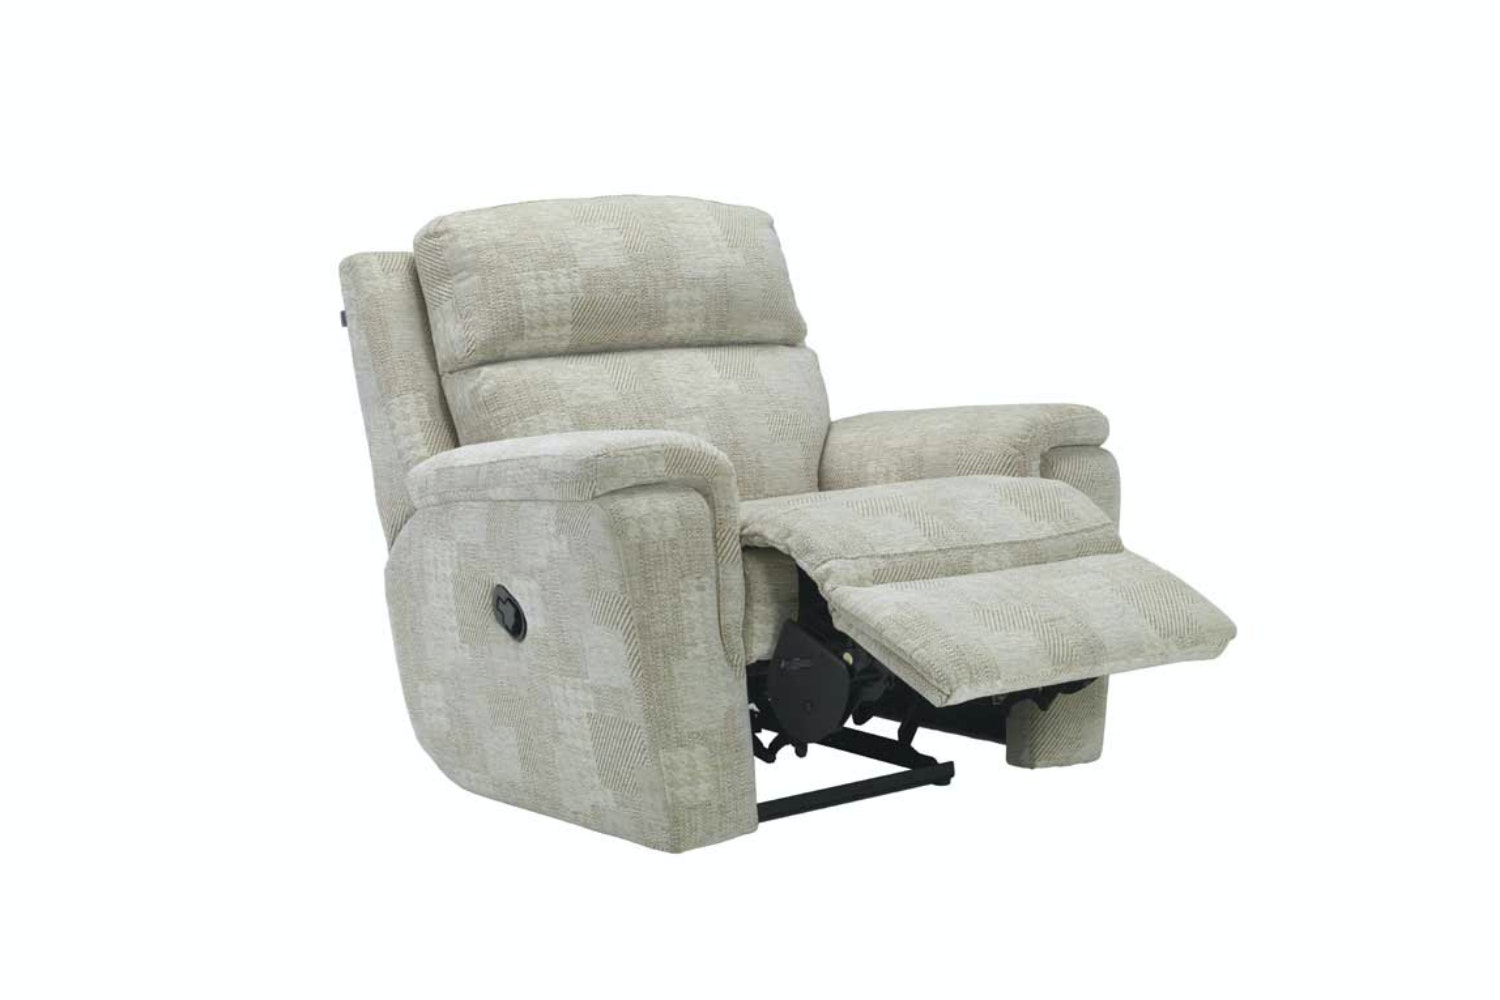 Samey Recliner Chair